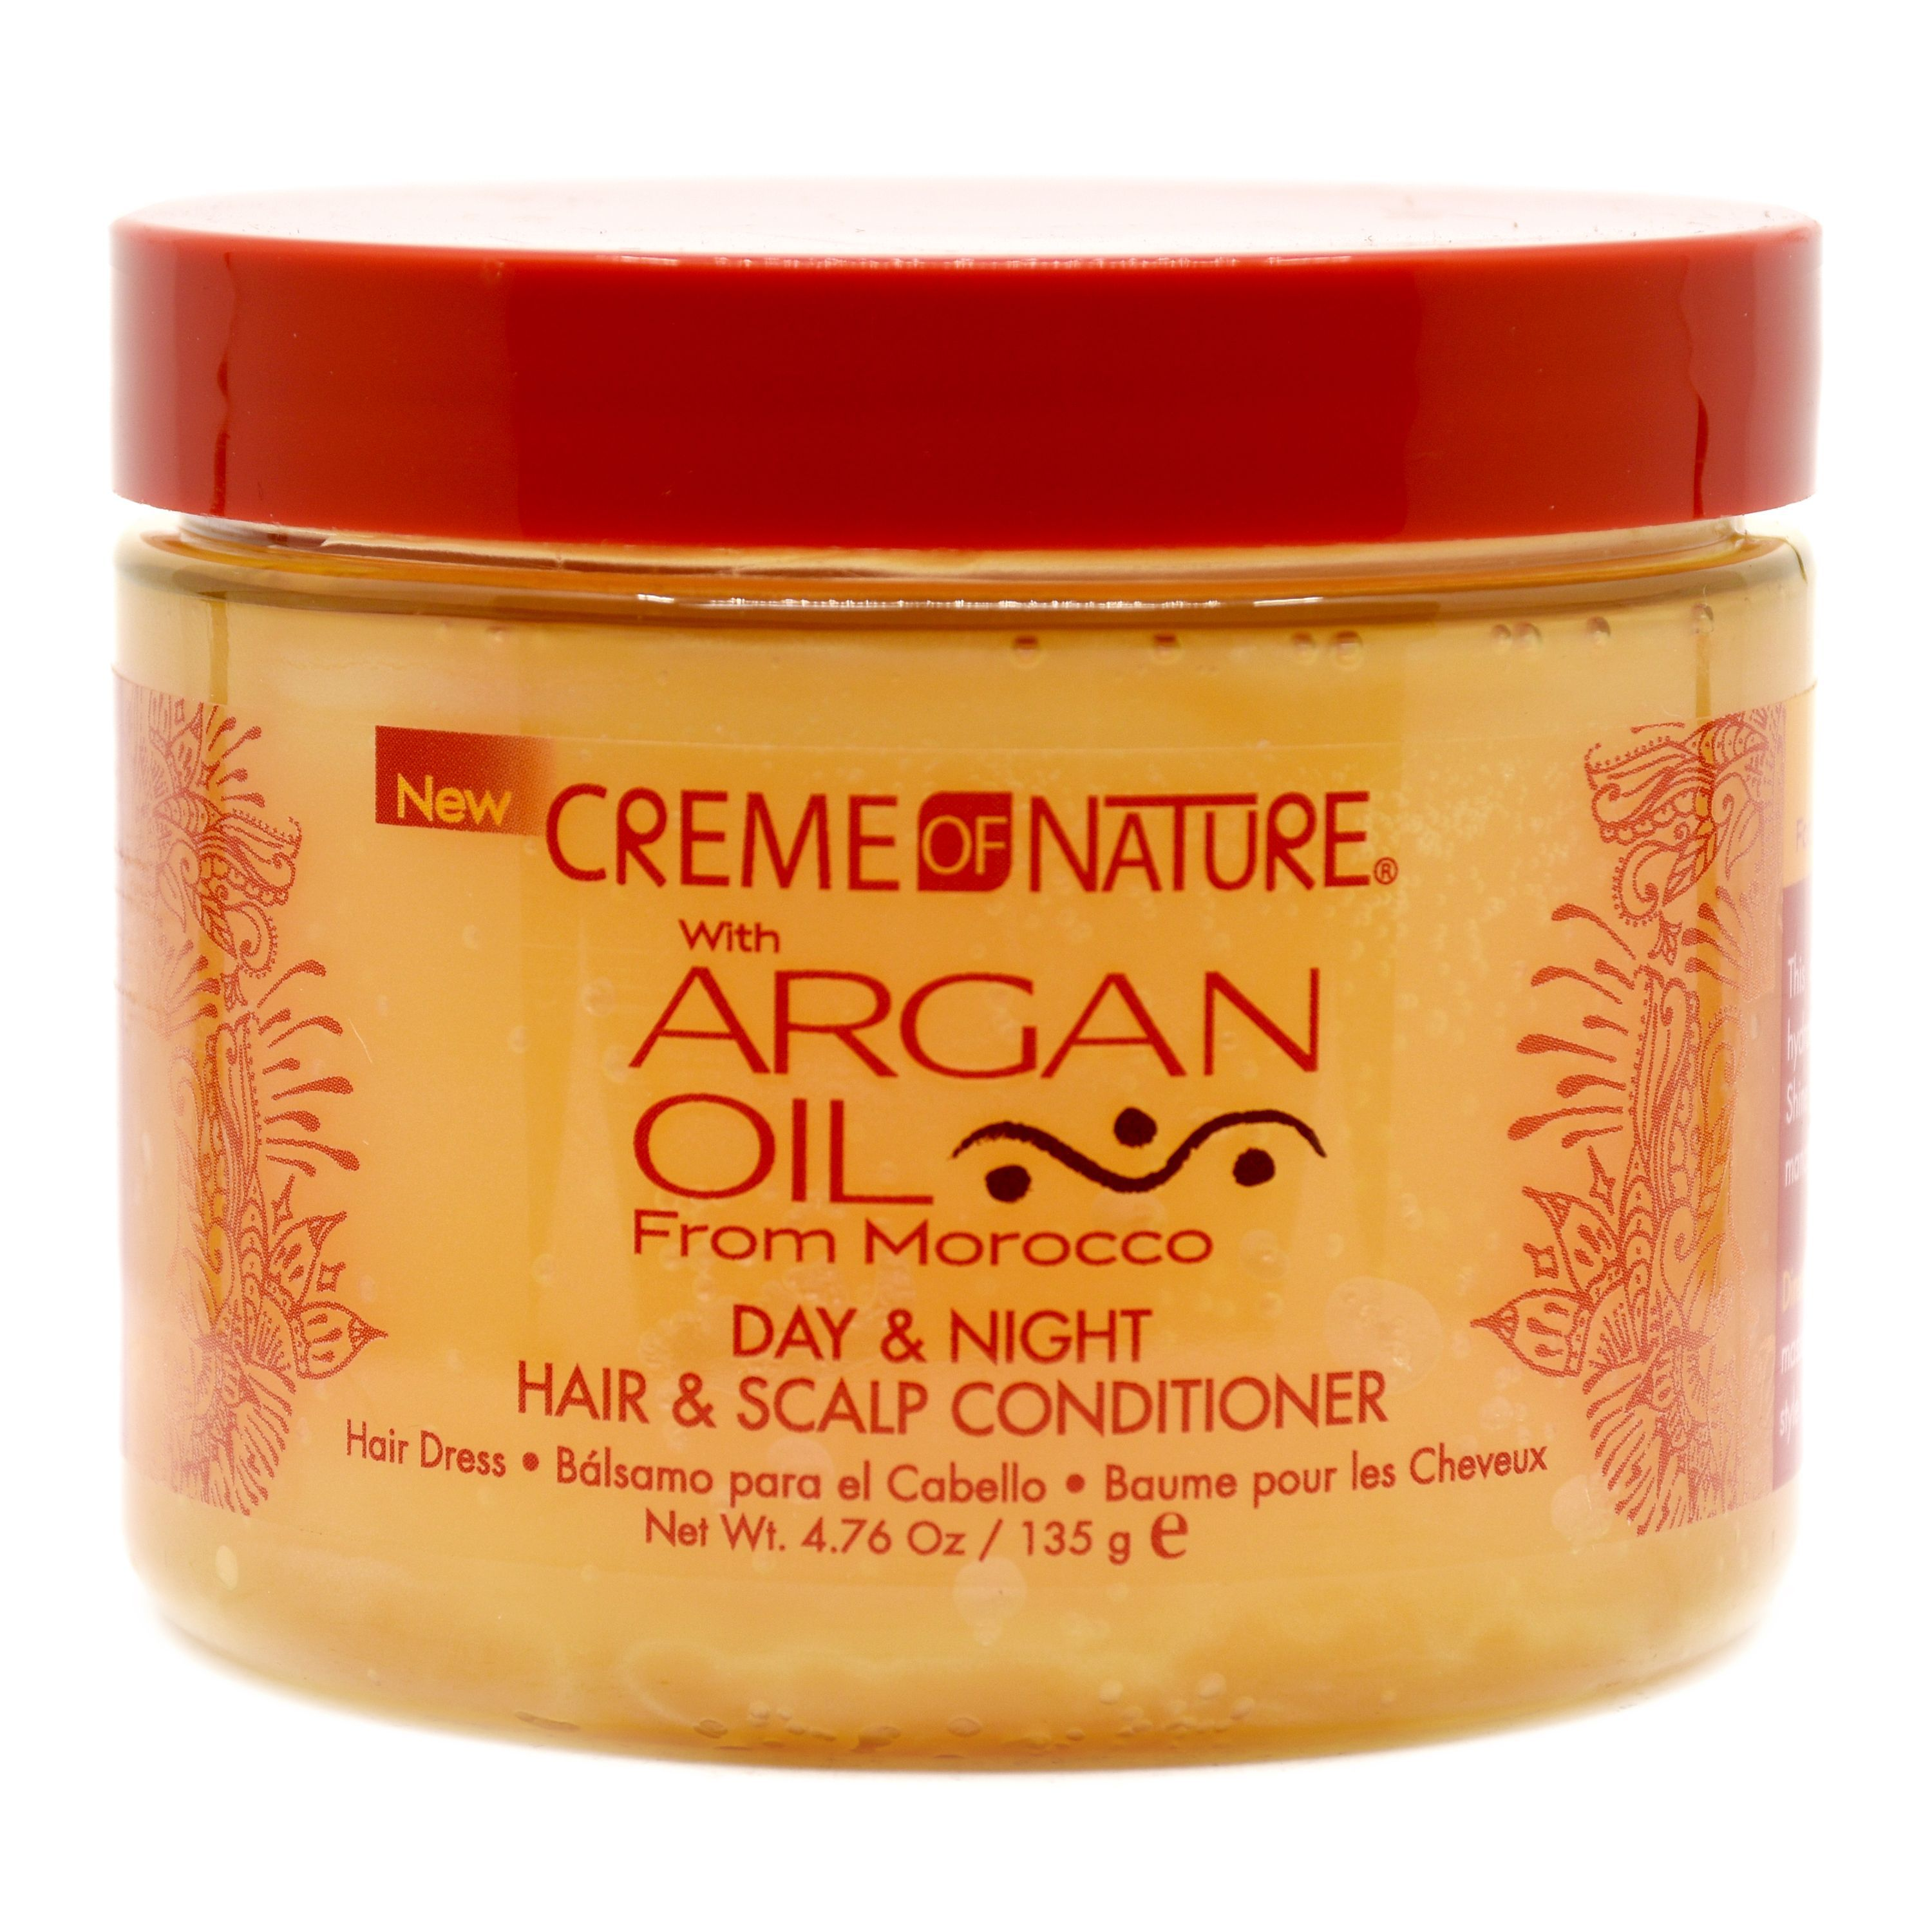 Creme Of Nature Argan Oil Day & Night Hair & Scalp Conditioner Hairdress - 4.76oz